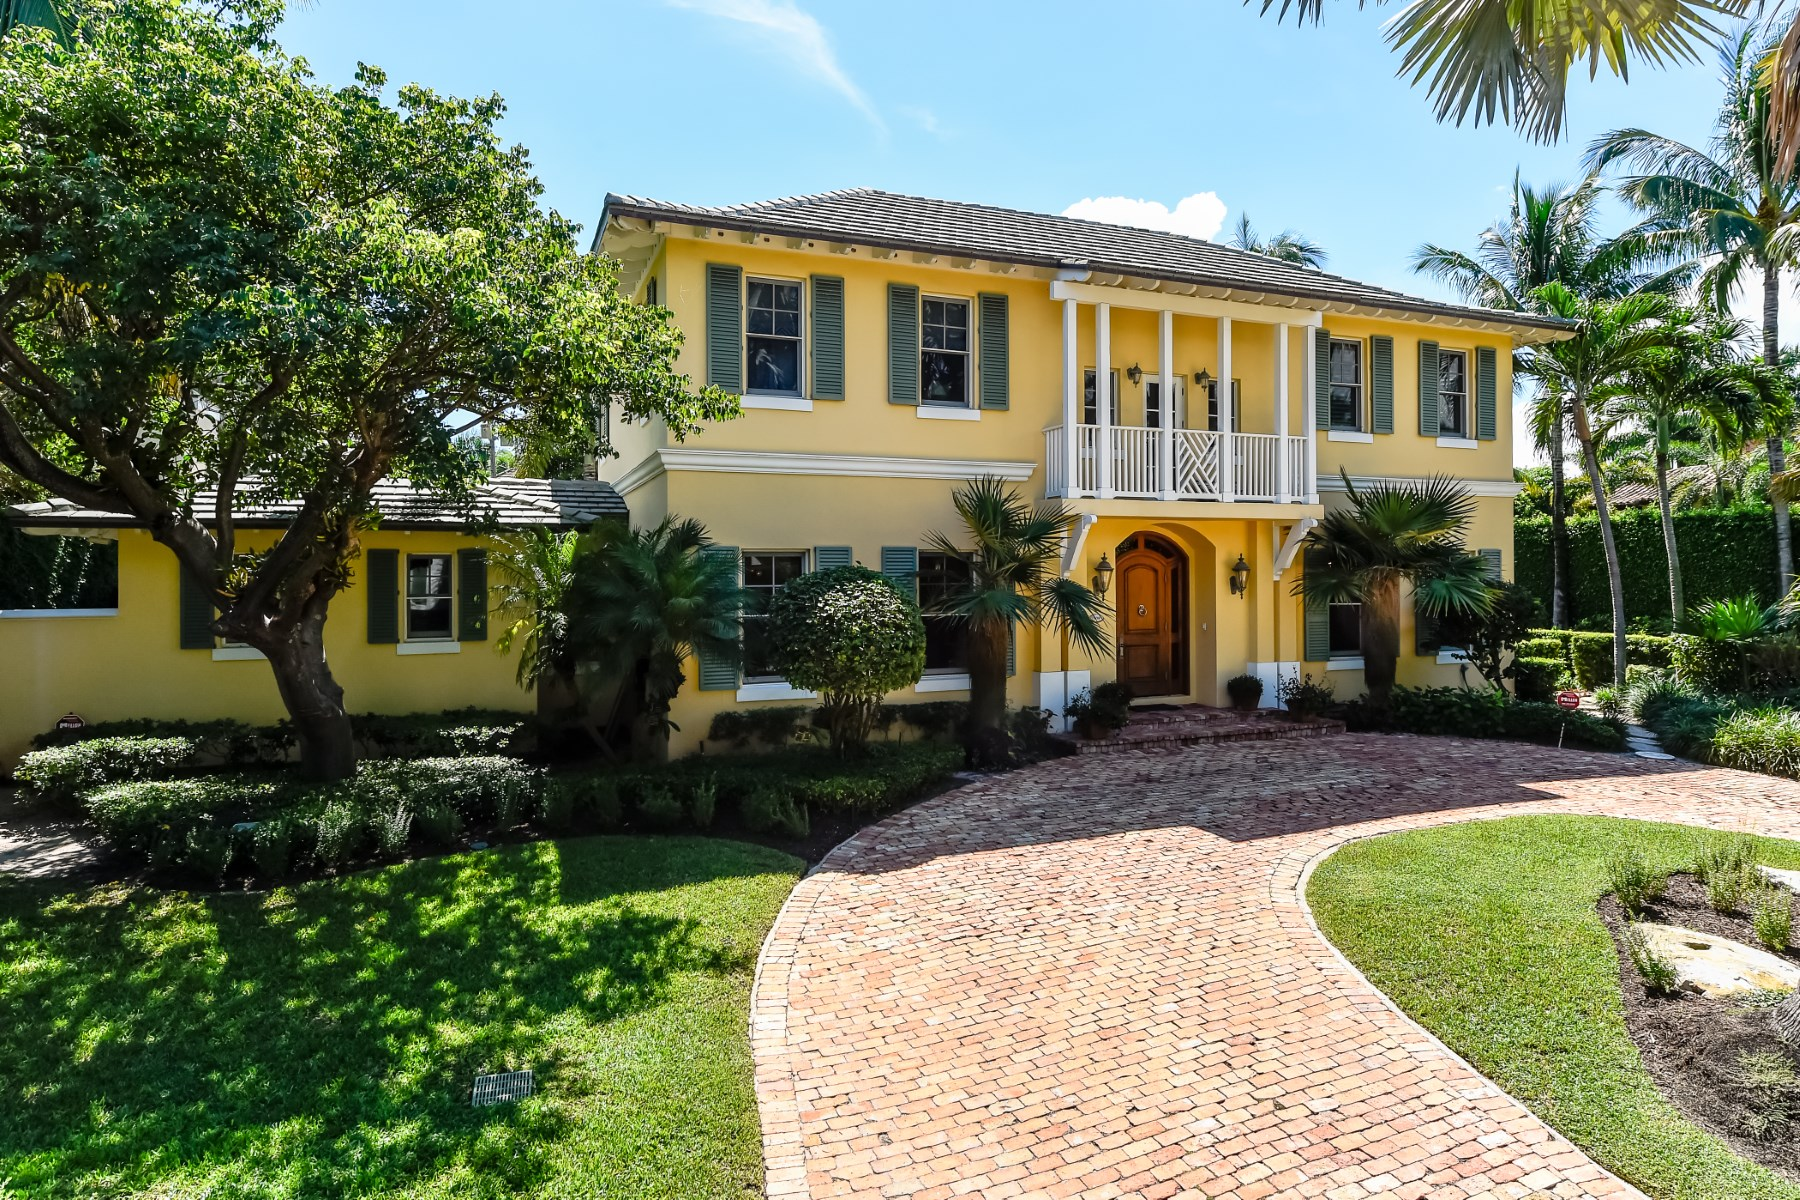 Single Family Home for Sale at Wonderful Two-Story North End Home 308 Arabian Rd North End, Palm Beach, Florida, 33480 United States